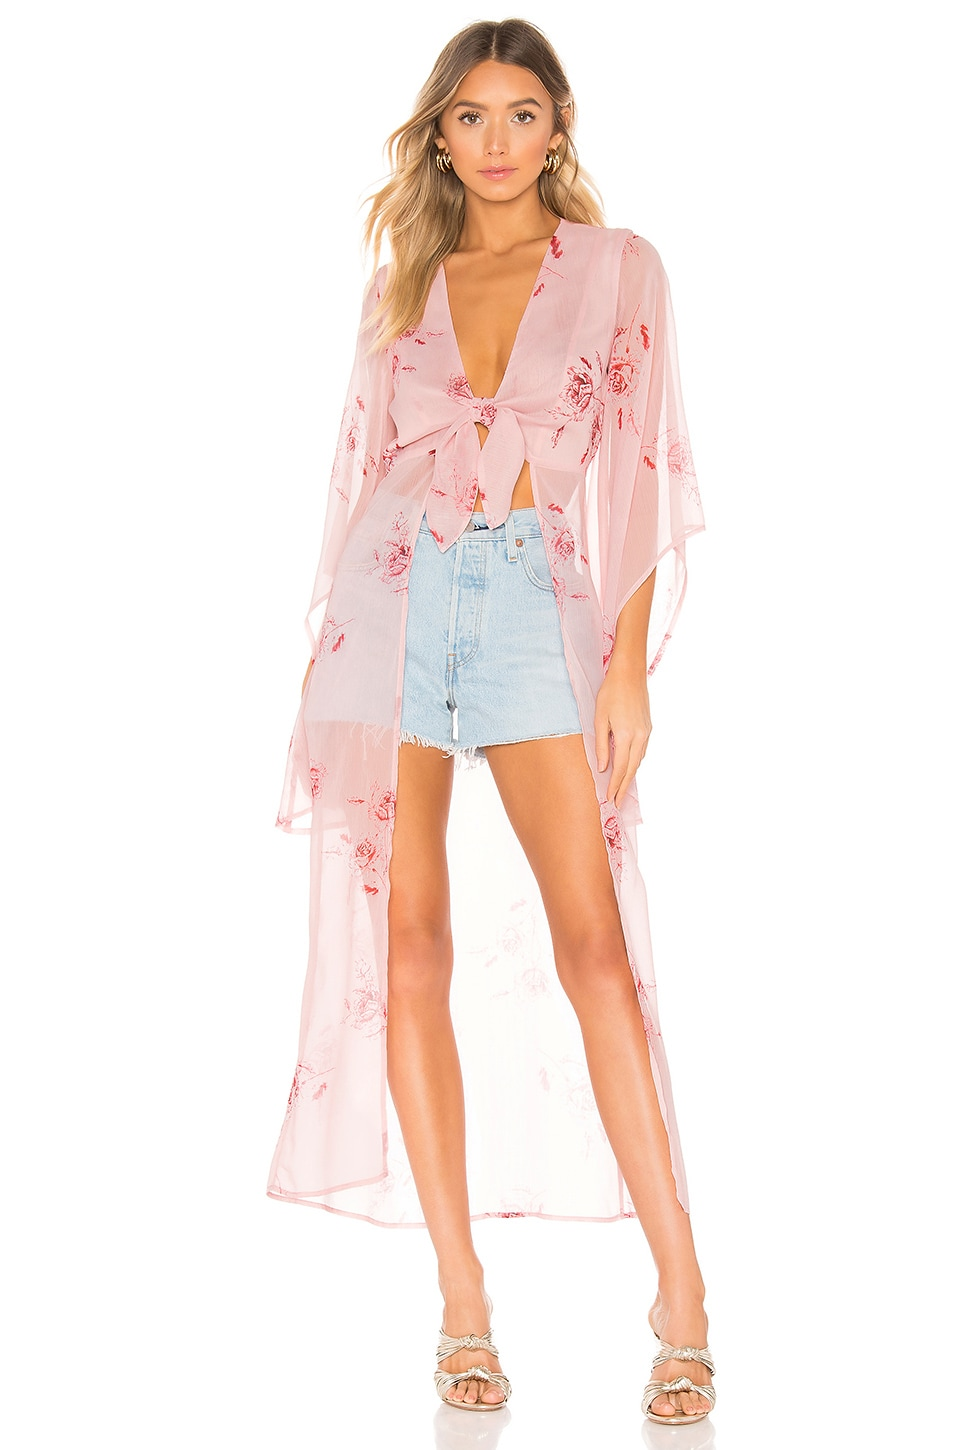 House of Harlow 1960 X REVOLVE Isa Maxi Blouse in Pink Floral